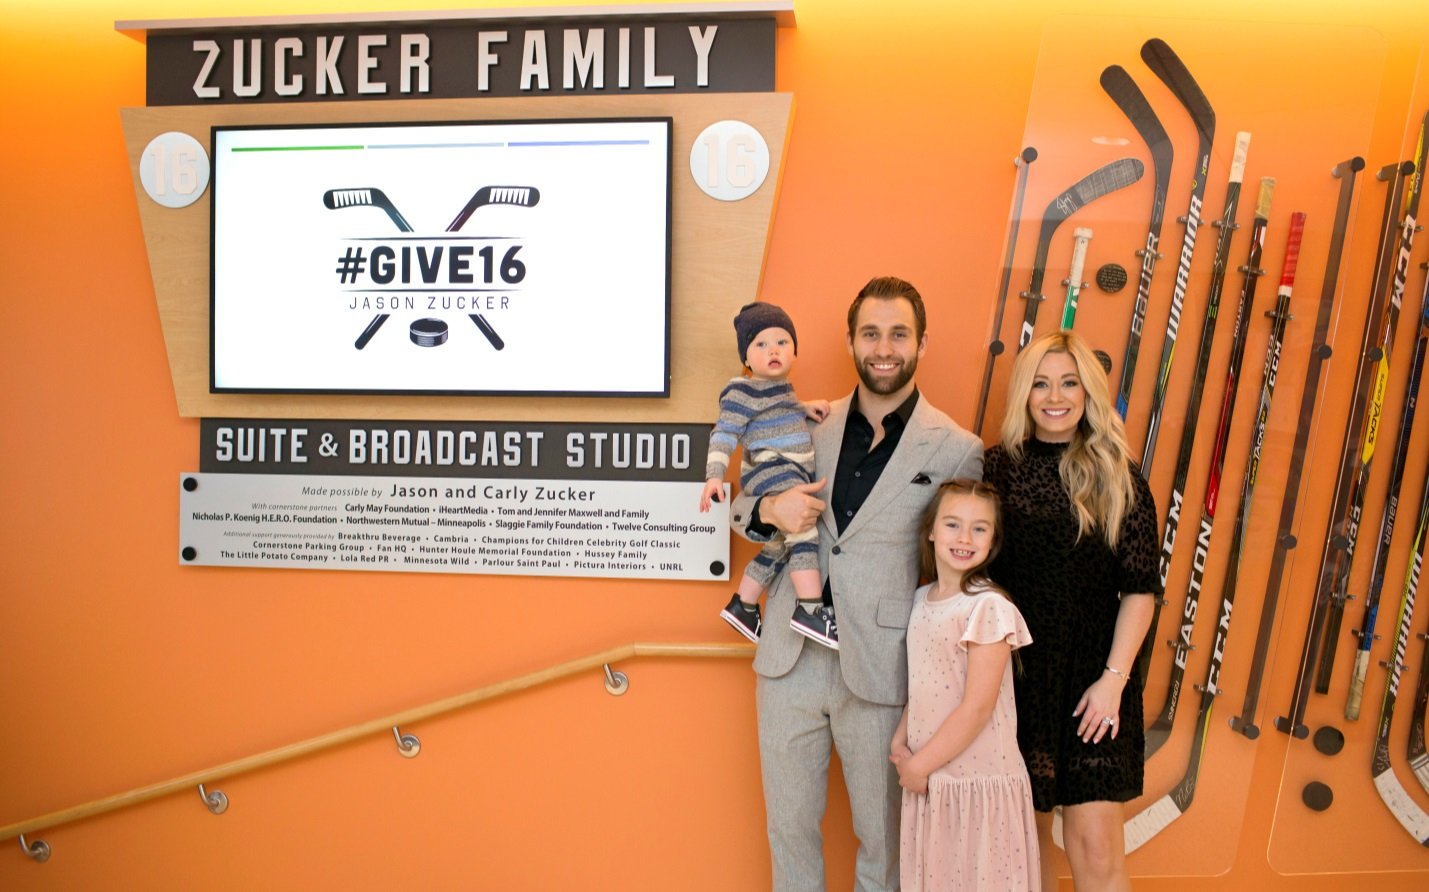 New Zucker Family Suite And Broadcast Studio Stands Out